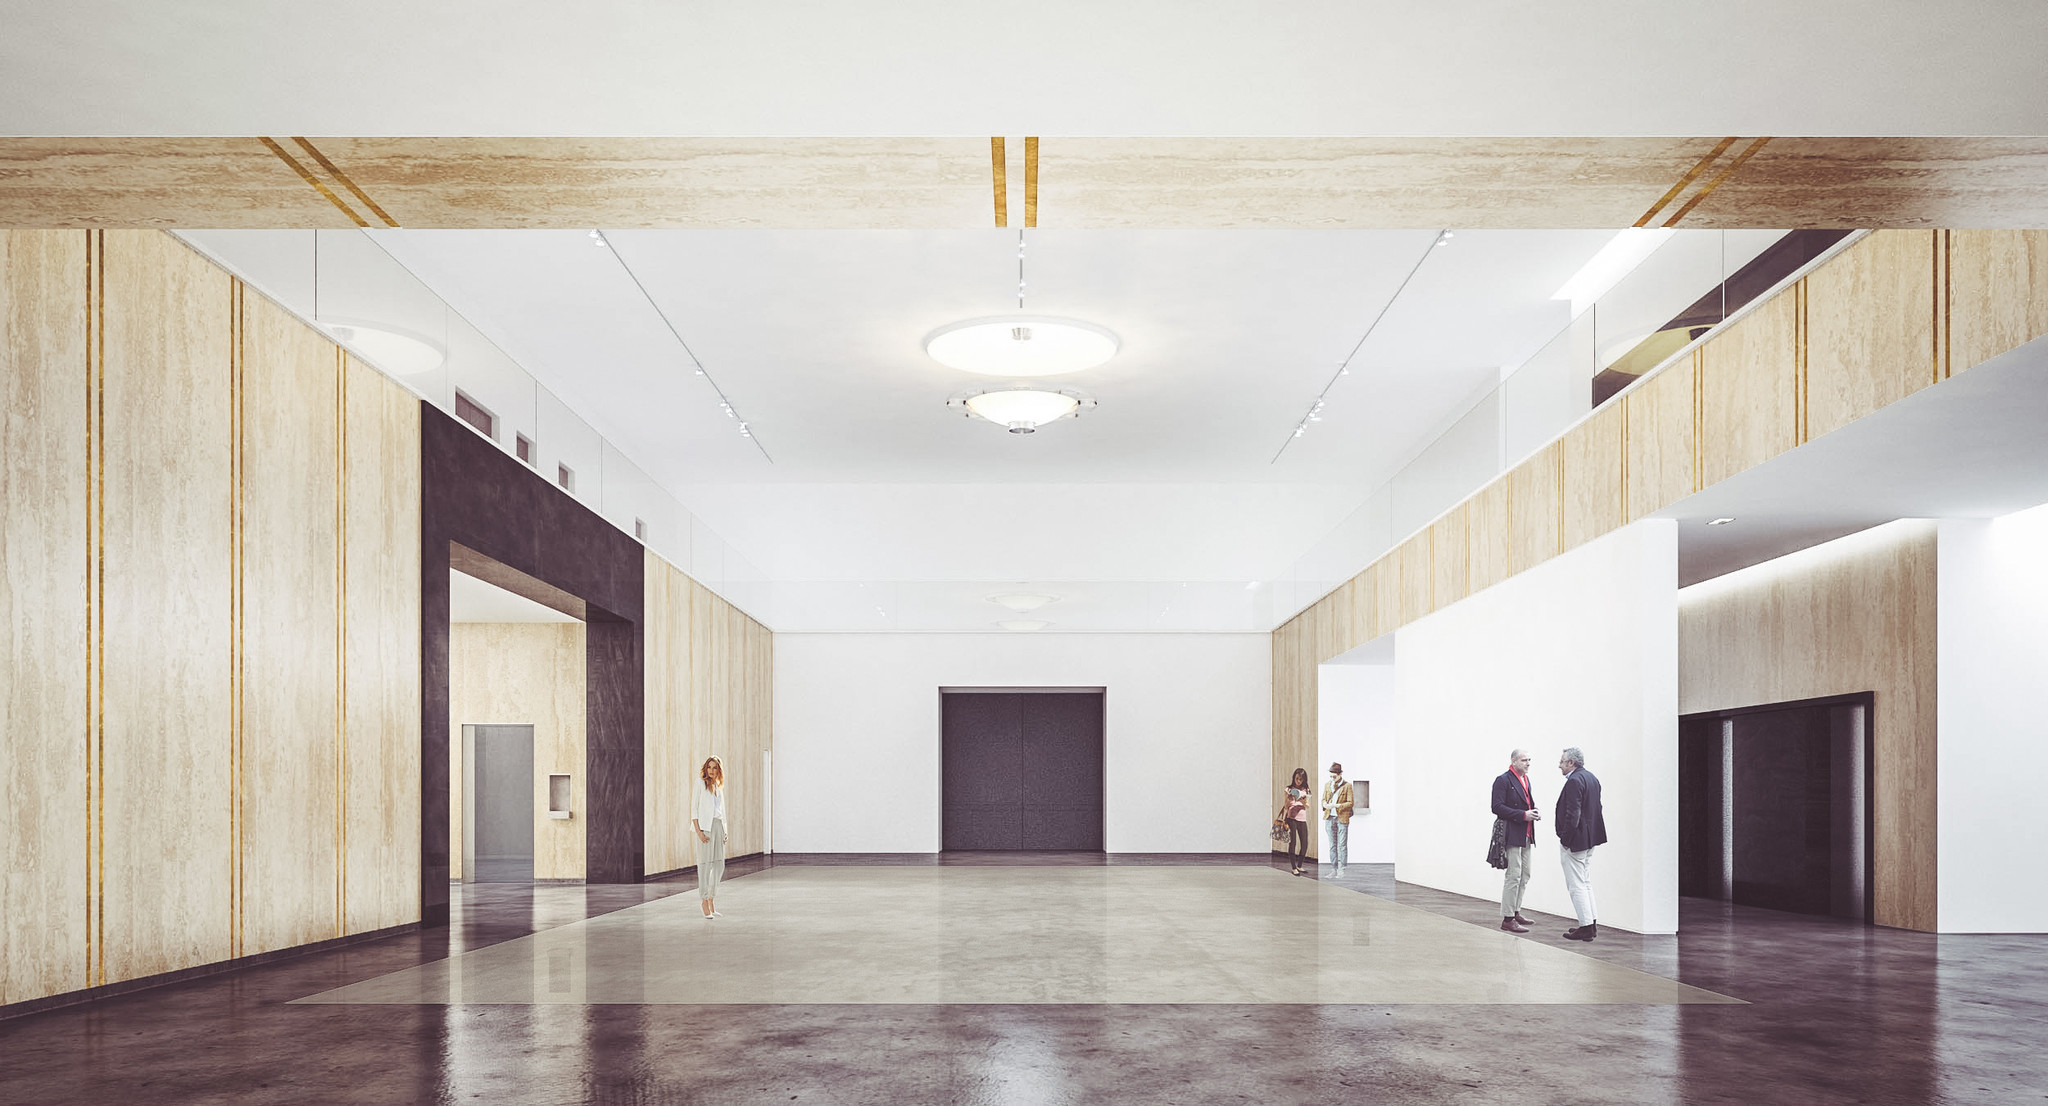 Marciano Art Foundation sets L.A. museum opening date for May